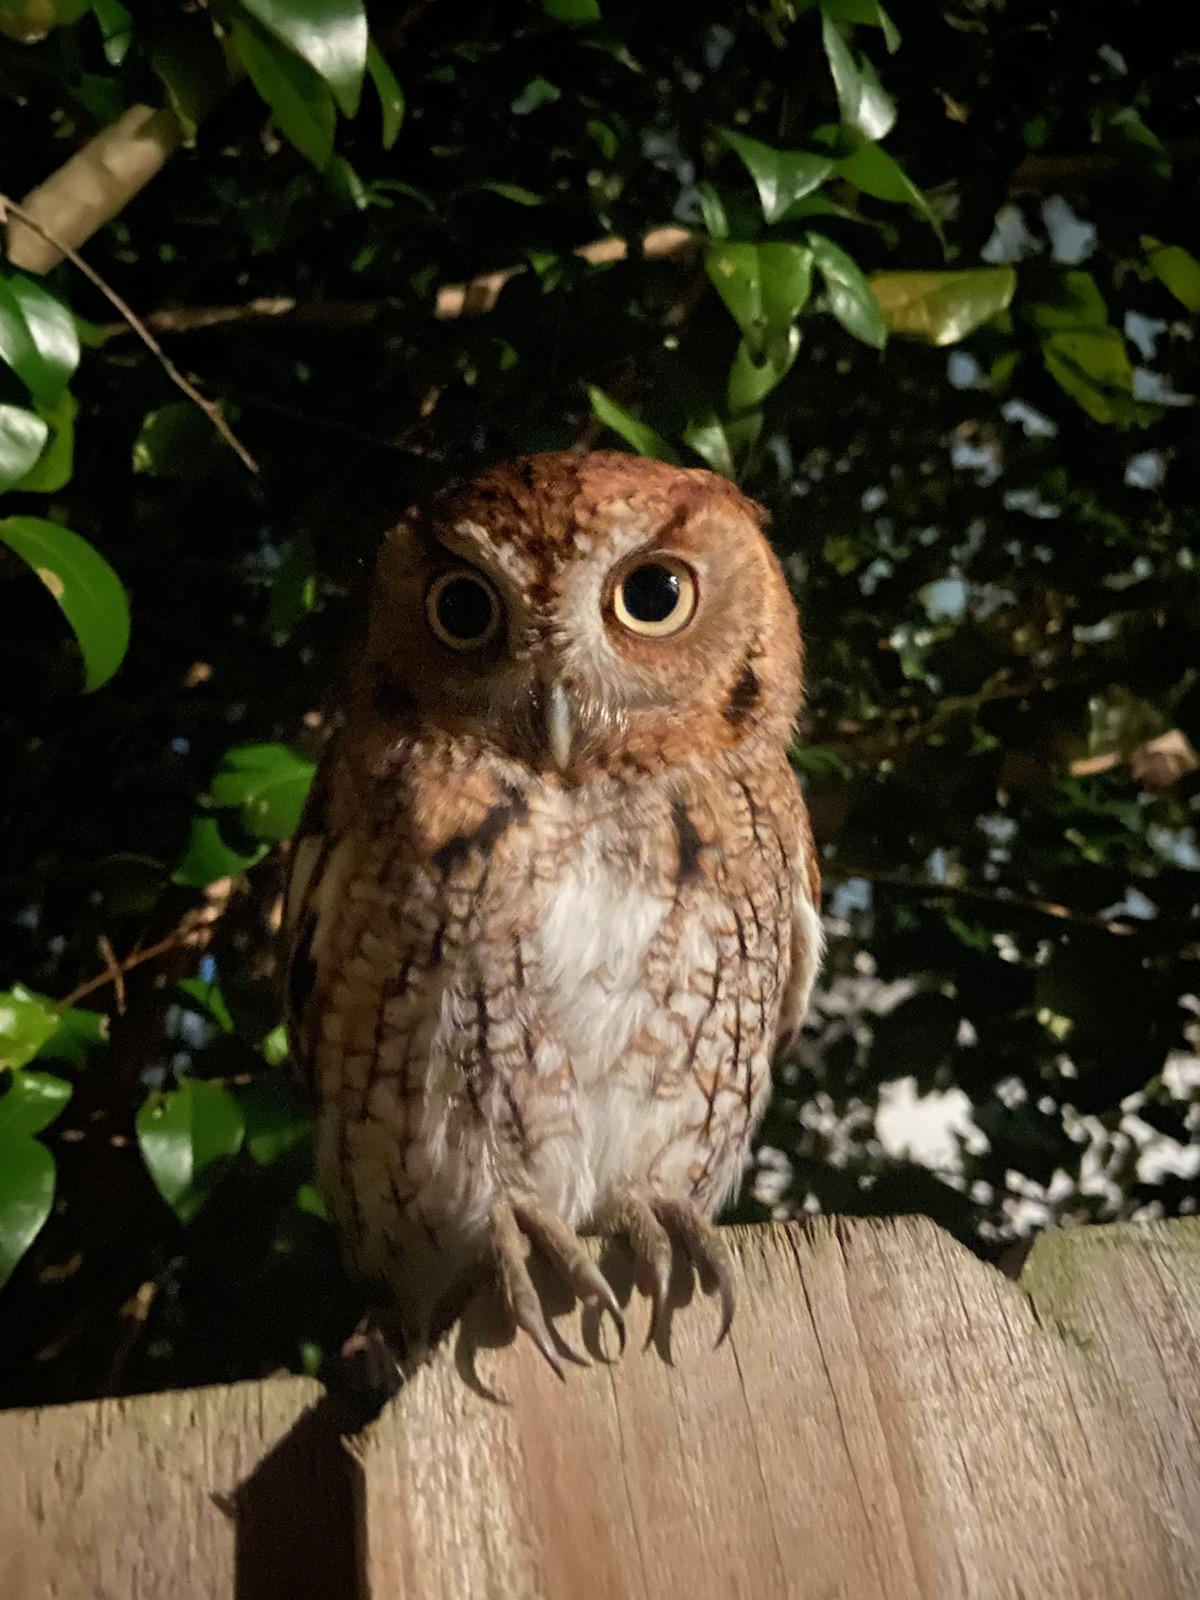 A close up night shot of a screech owl on a fence.